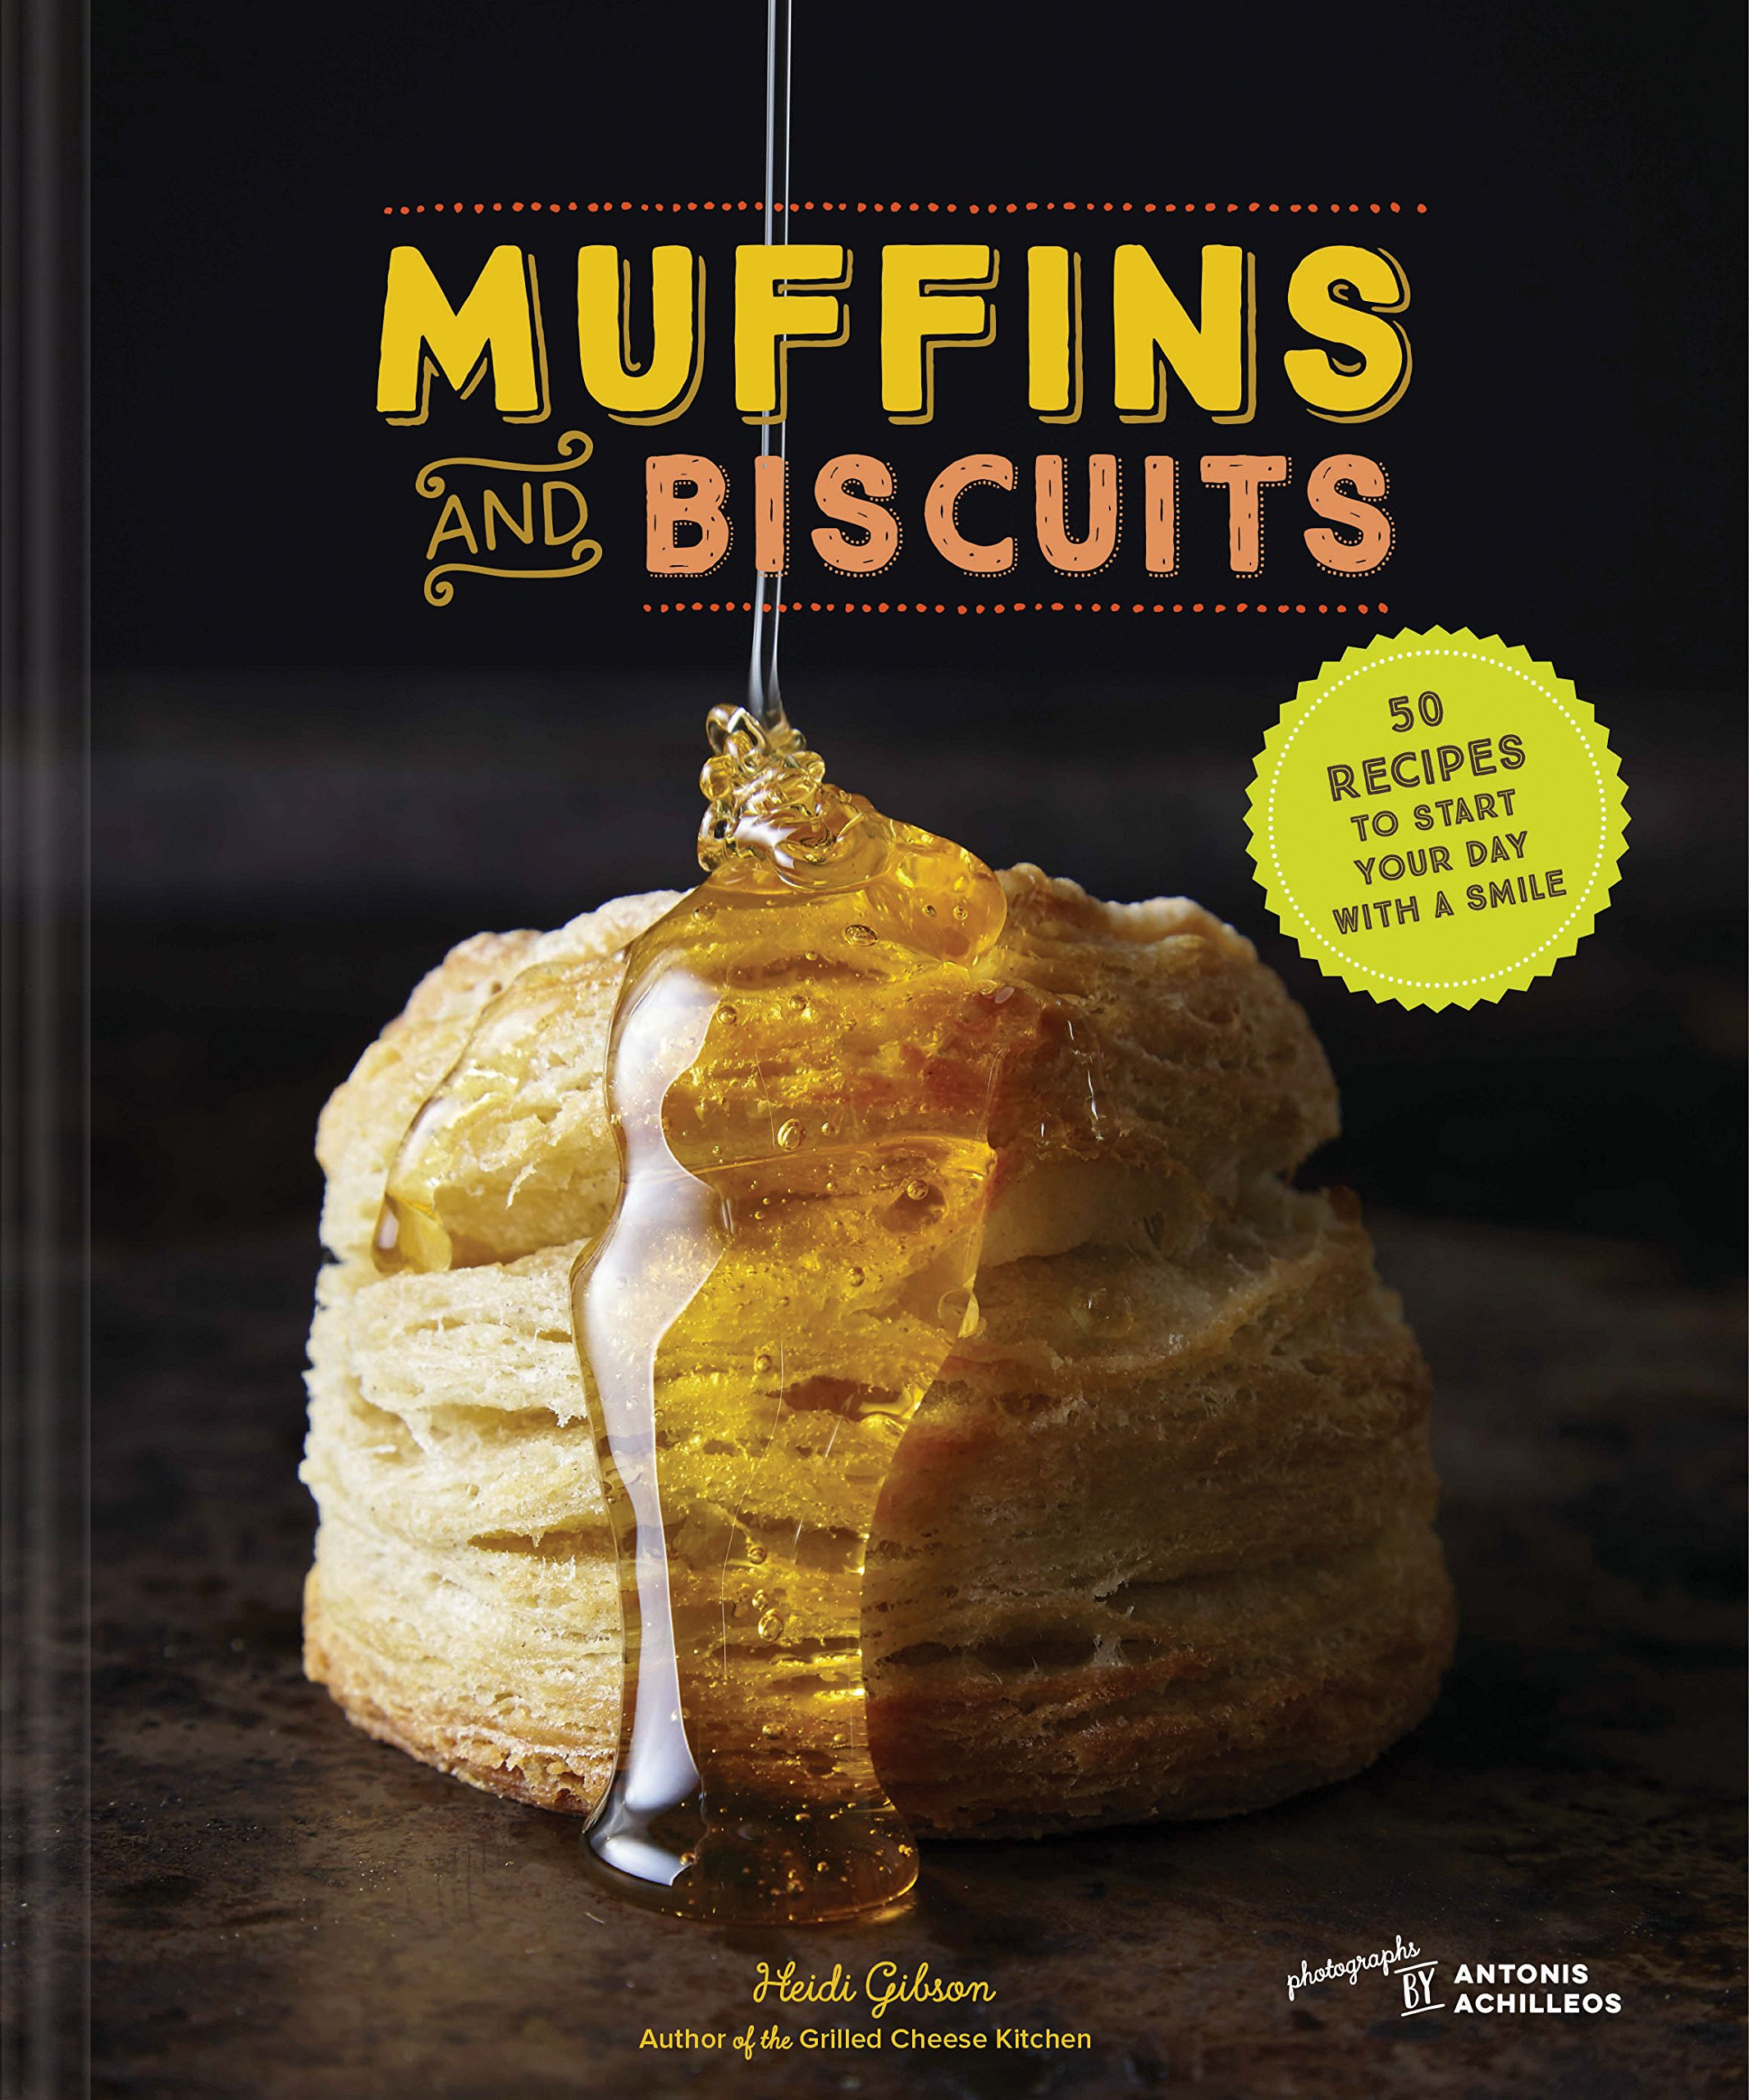 Muffins Biscuits Recipes Start Smile product image